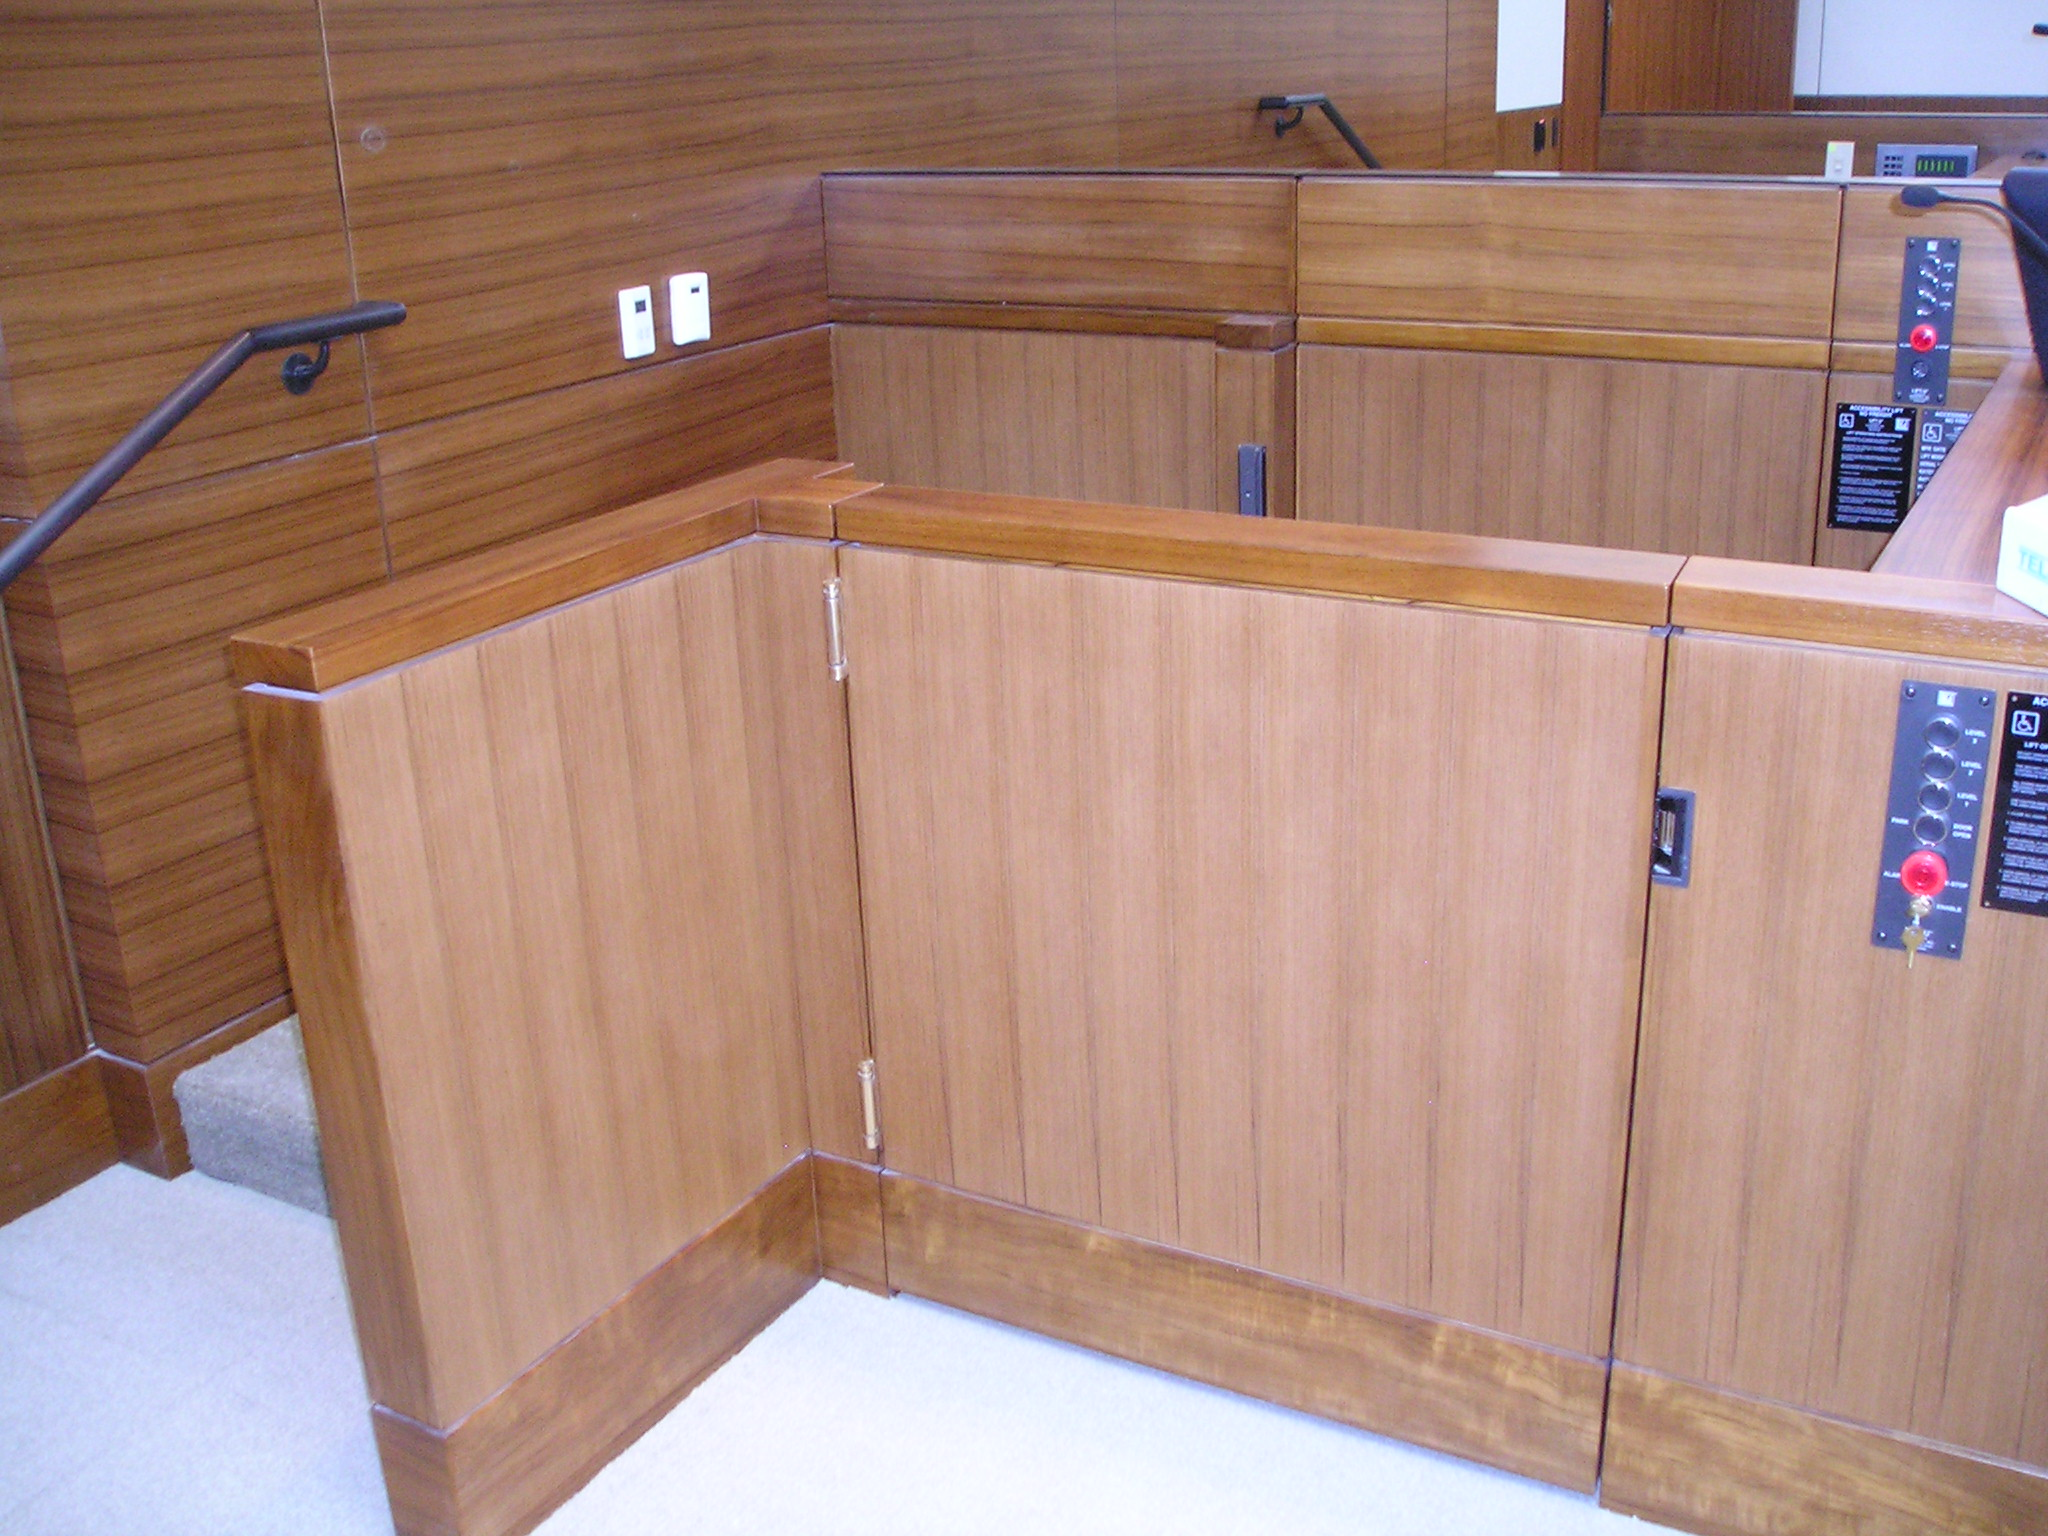 Lift positioned at witness or intermediate level allowing ambulatory access to the witness stand and the judge bench. The lower level door is opened and the door to the judge bench is closed. Lift encased in wood millwork blending in with courtroom millwork. Lift is readily available and independently operable.